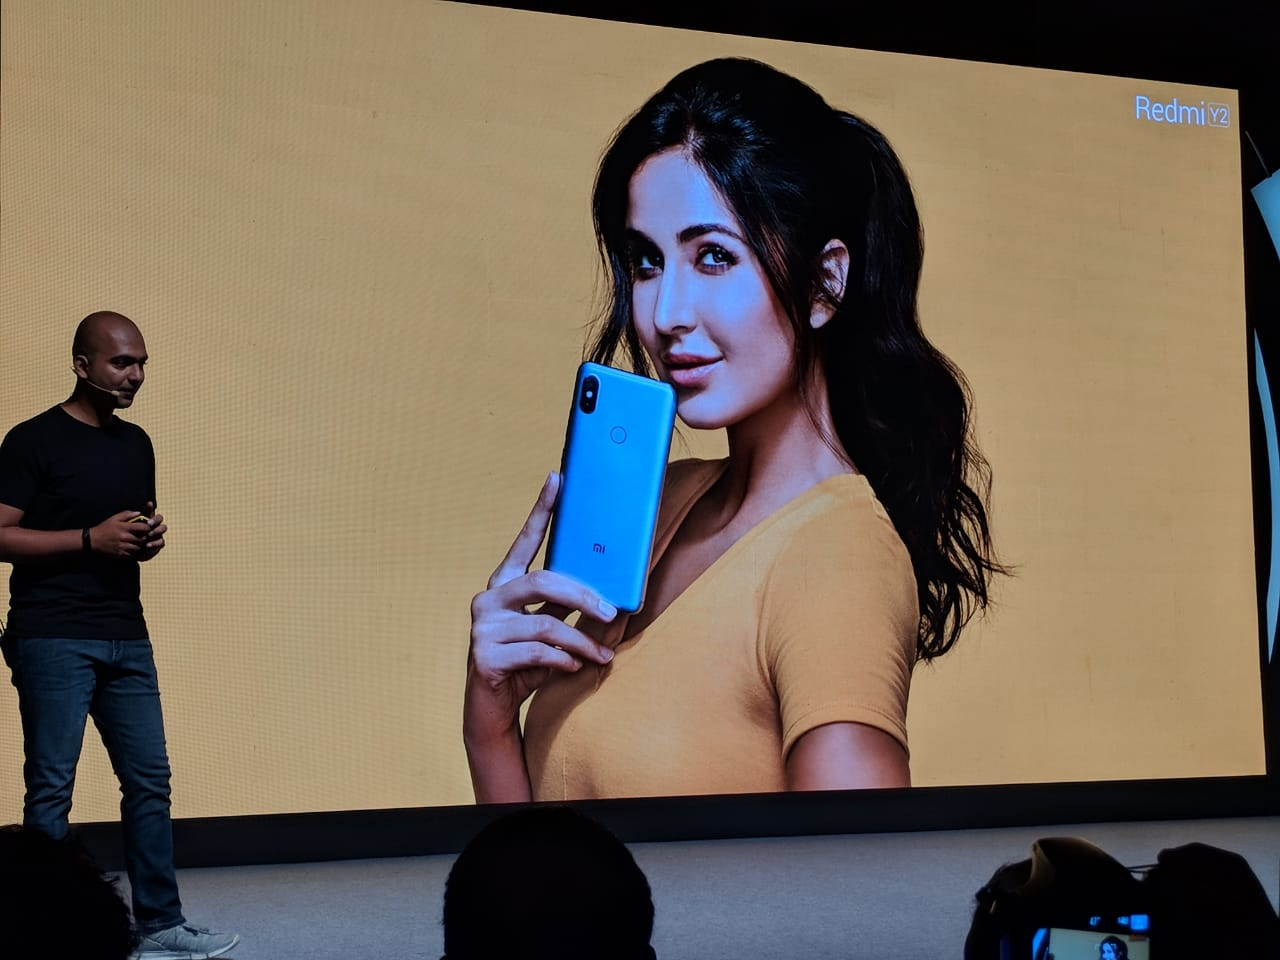 Redmi Y2 will have Katrina Kaif as the brand ambassador (Image: Beebom)